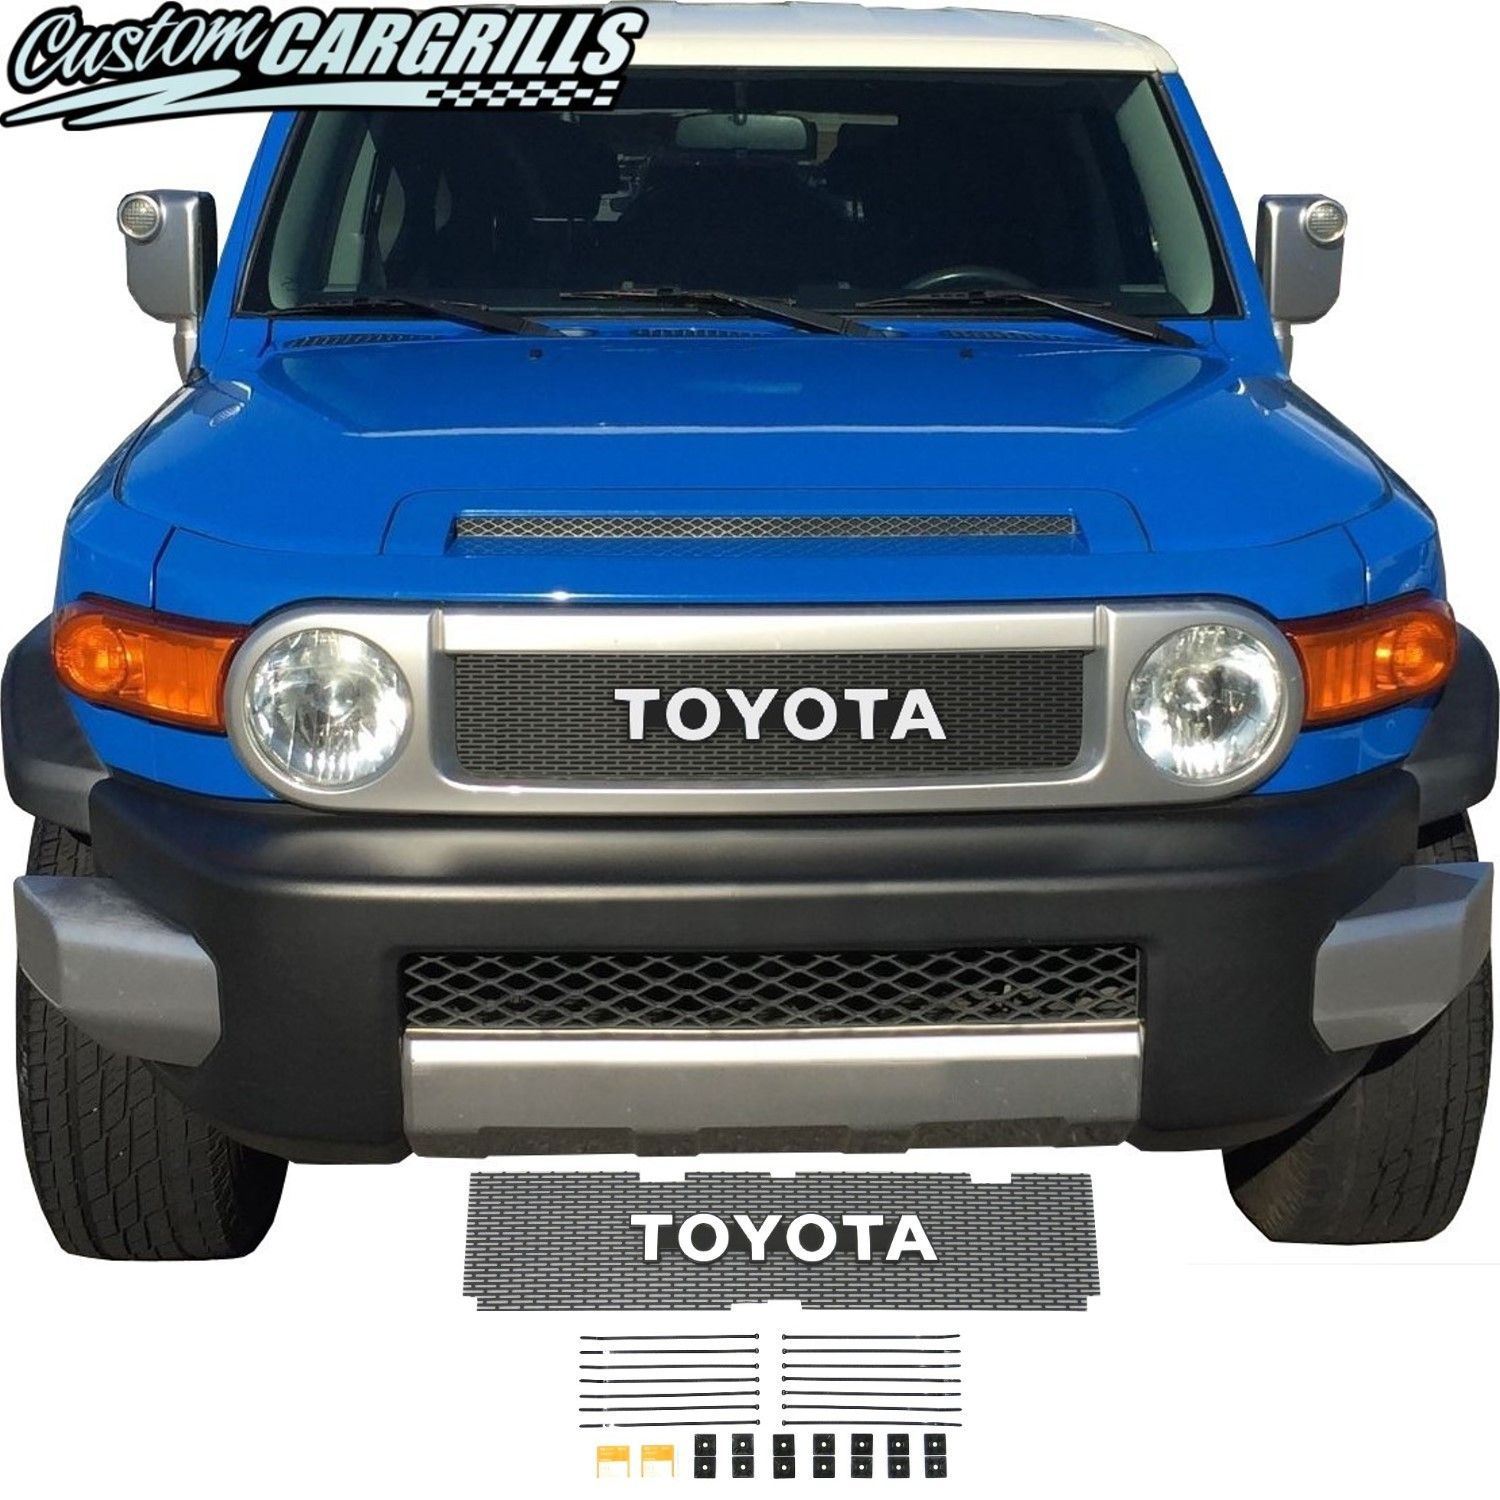 2006-14 Toyota FJ Cruiser Grill Mesh With Toyota Emblem